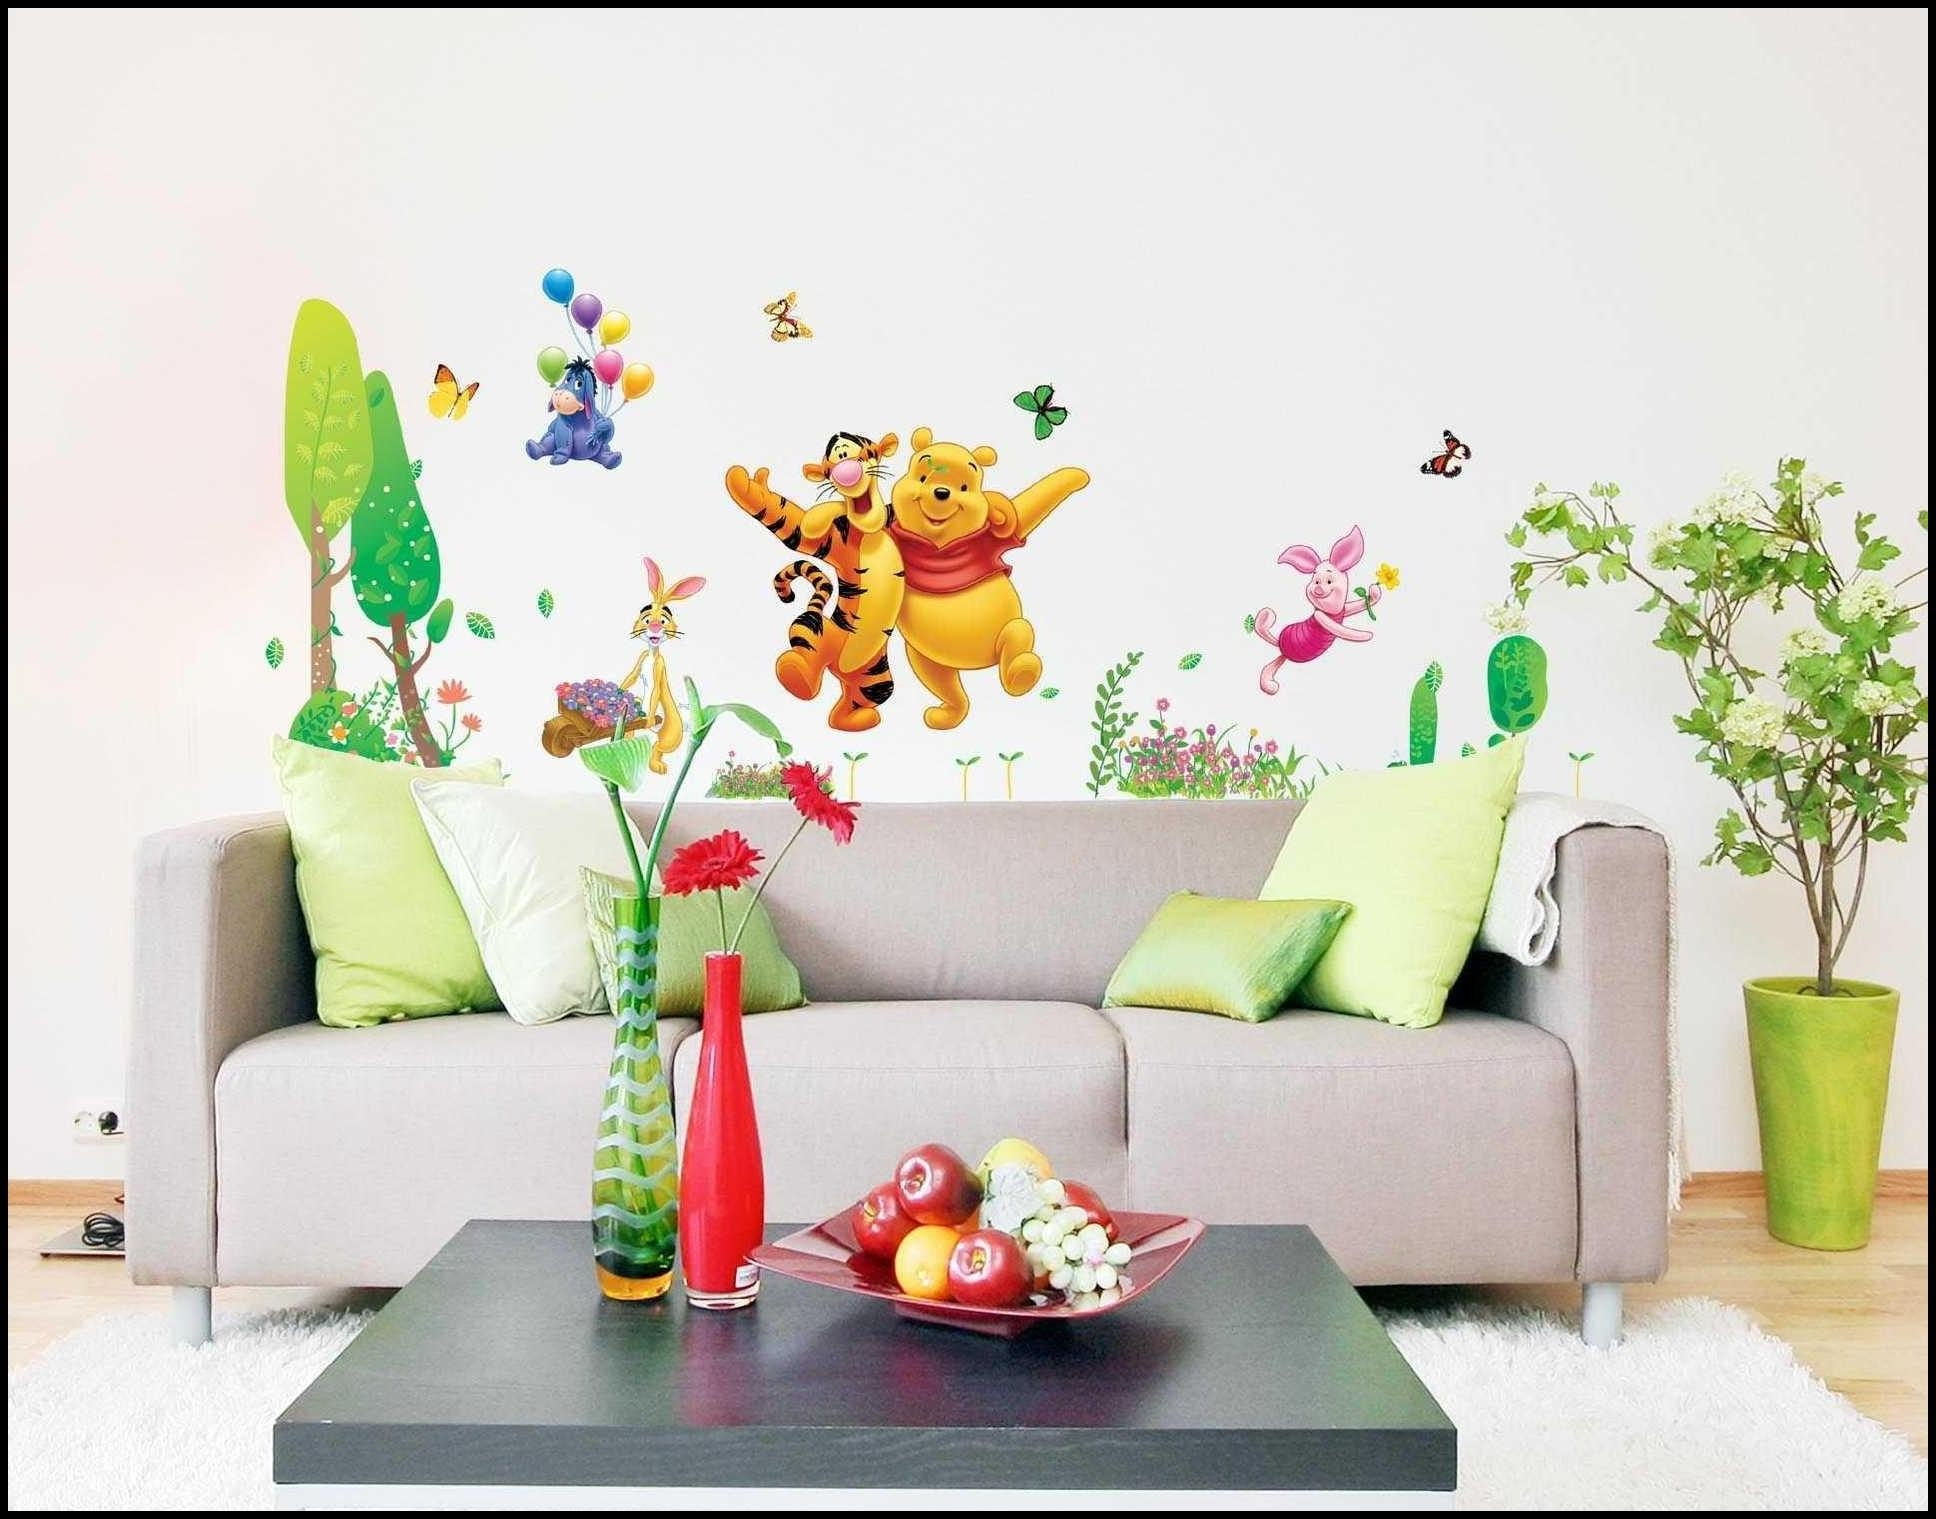 Popular Winnie The Pooh Wall Decals : Winnie The Pooh Wall Decals In Winnie The Pooh Wall Decor (View 10 of 20)